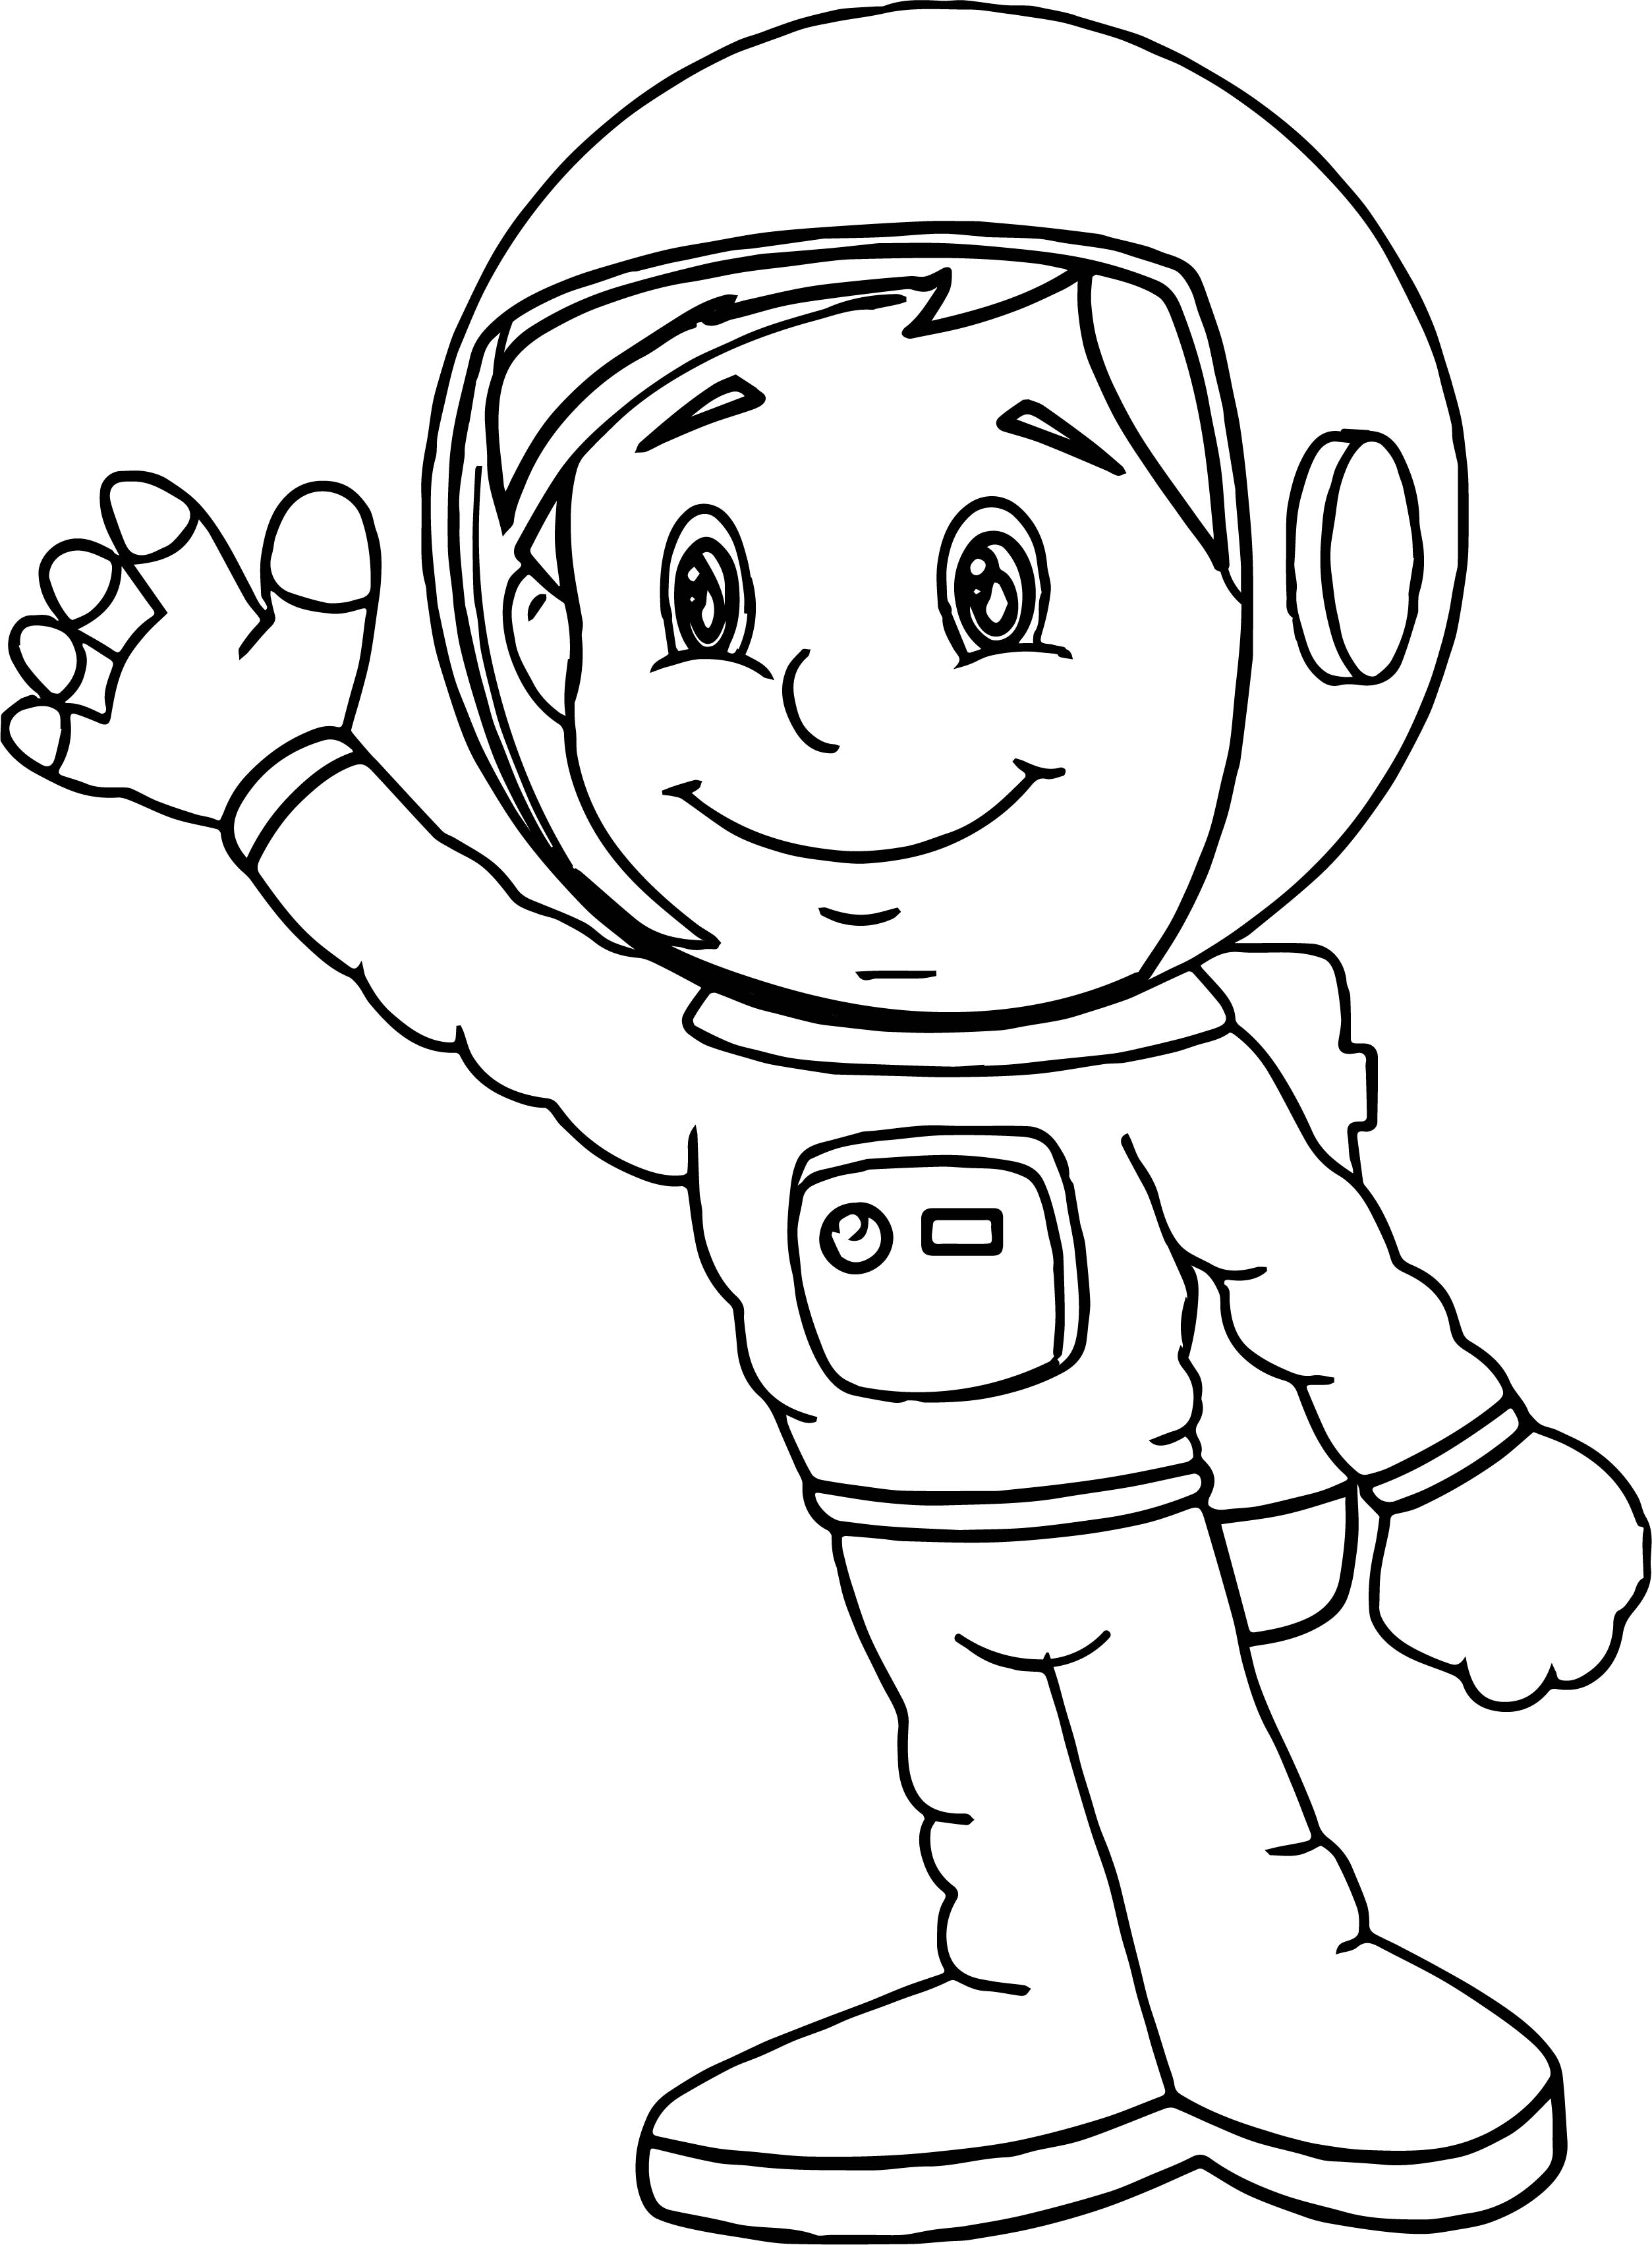 Astronaut - Free Coloring Pages